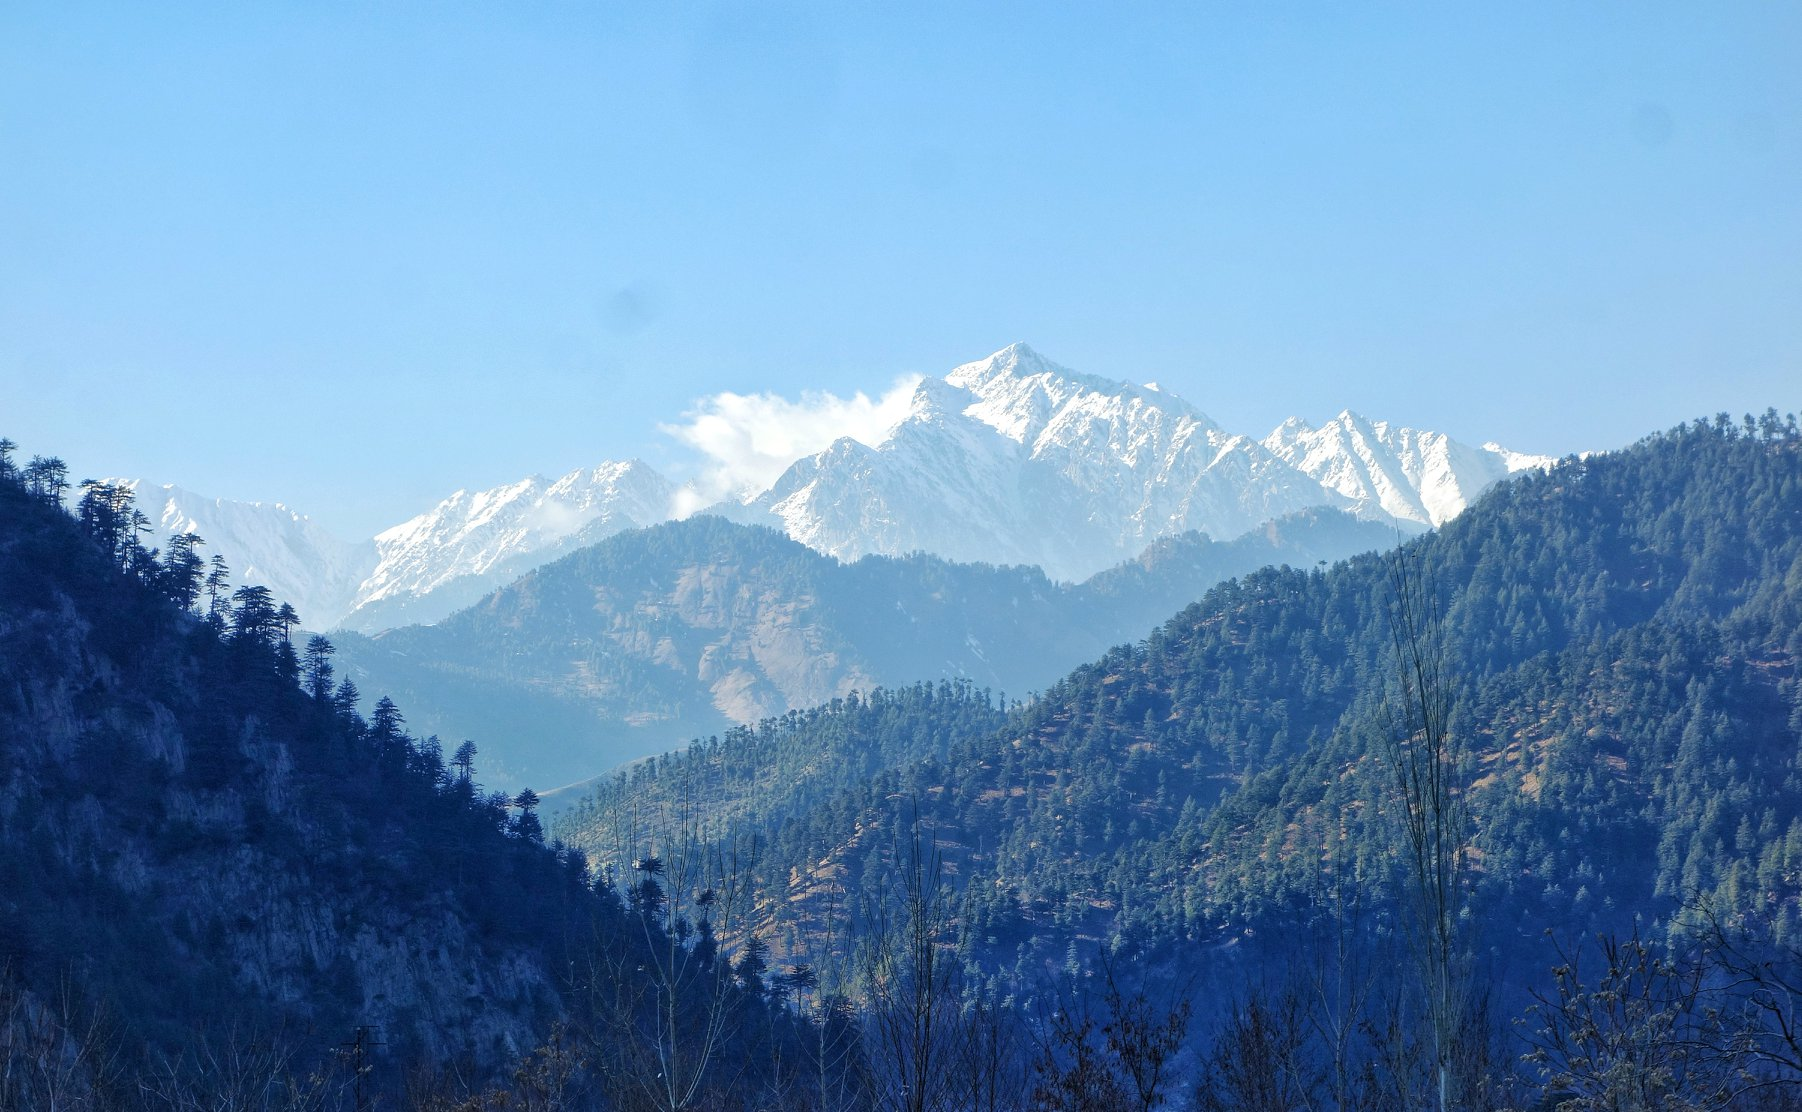 The Kazinag Mountain as seen on the way to Uri near Boniyar. The Mountain is also Home to the Kazinag National Park which is considered the home of the elusive Markhors in Kashmir.